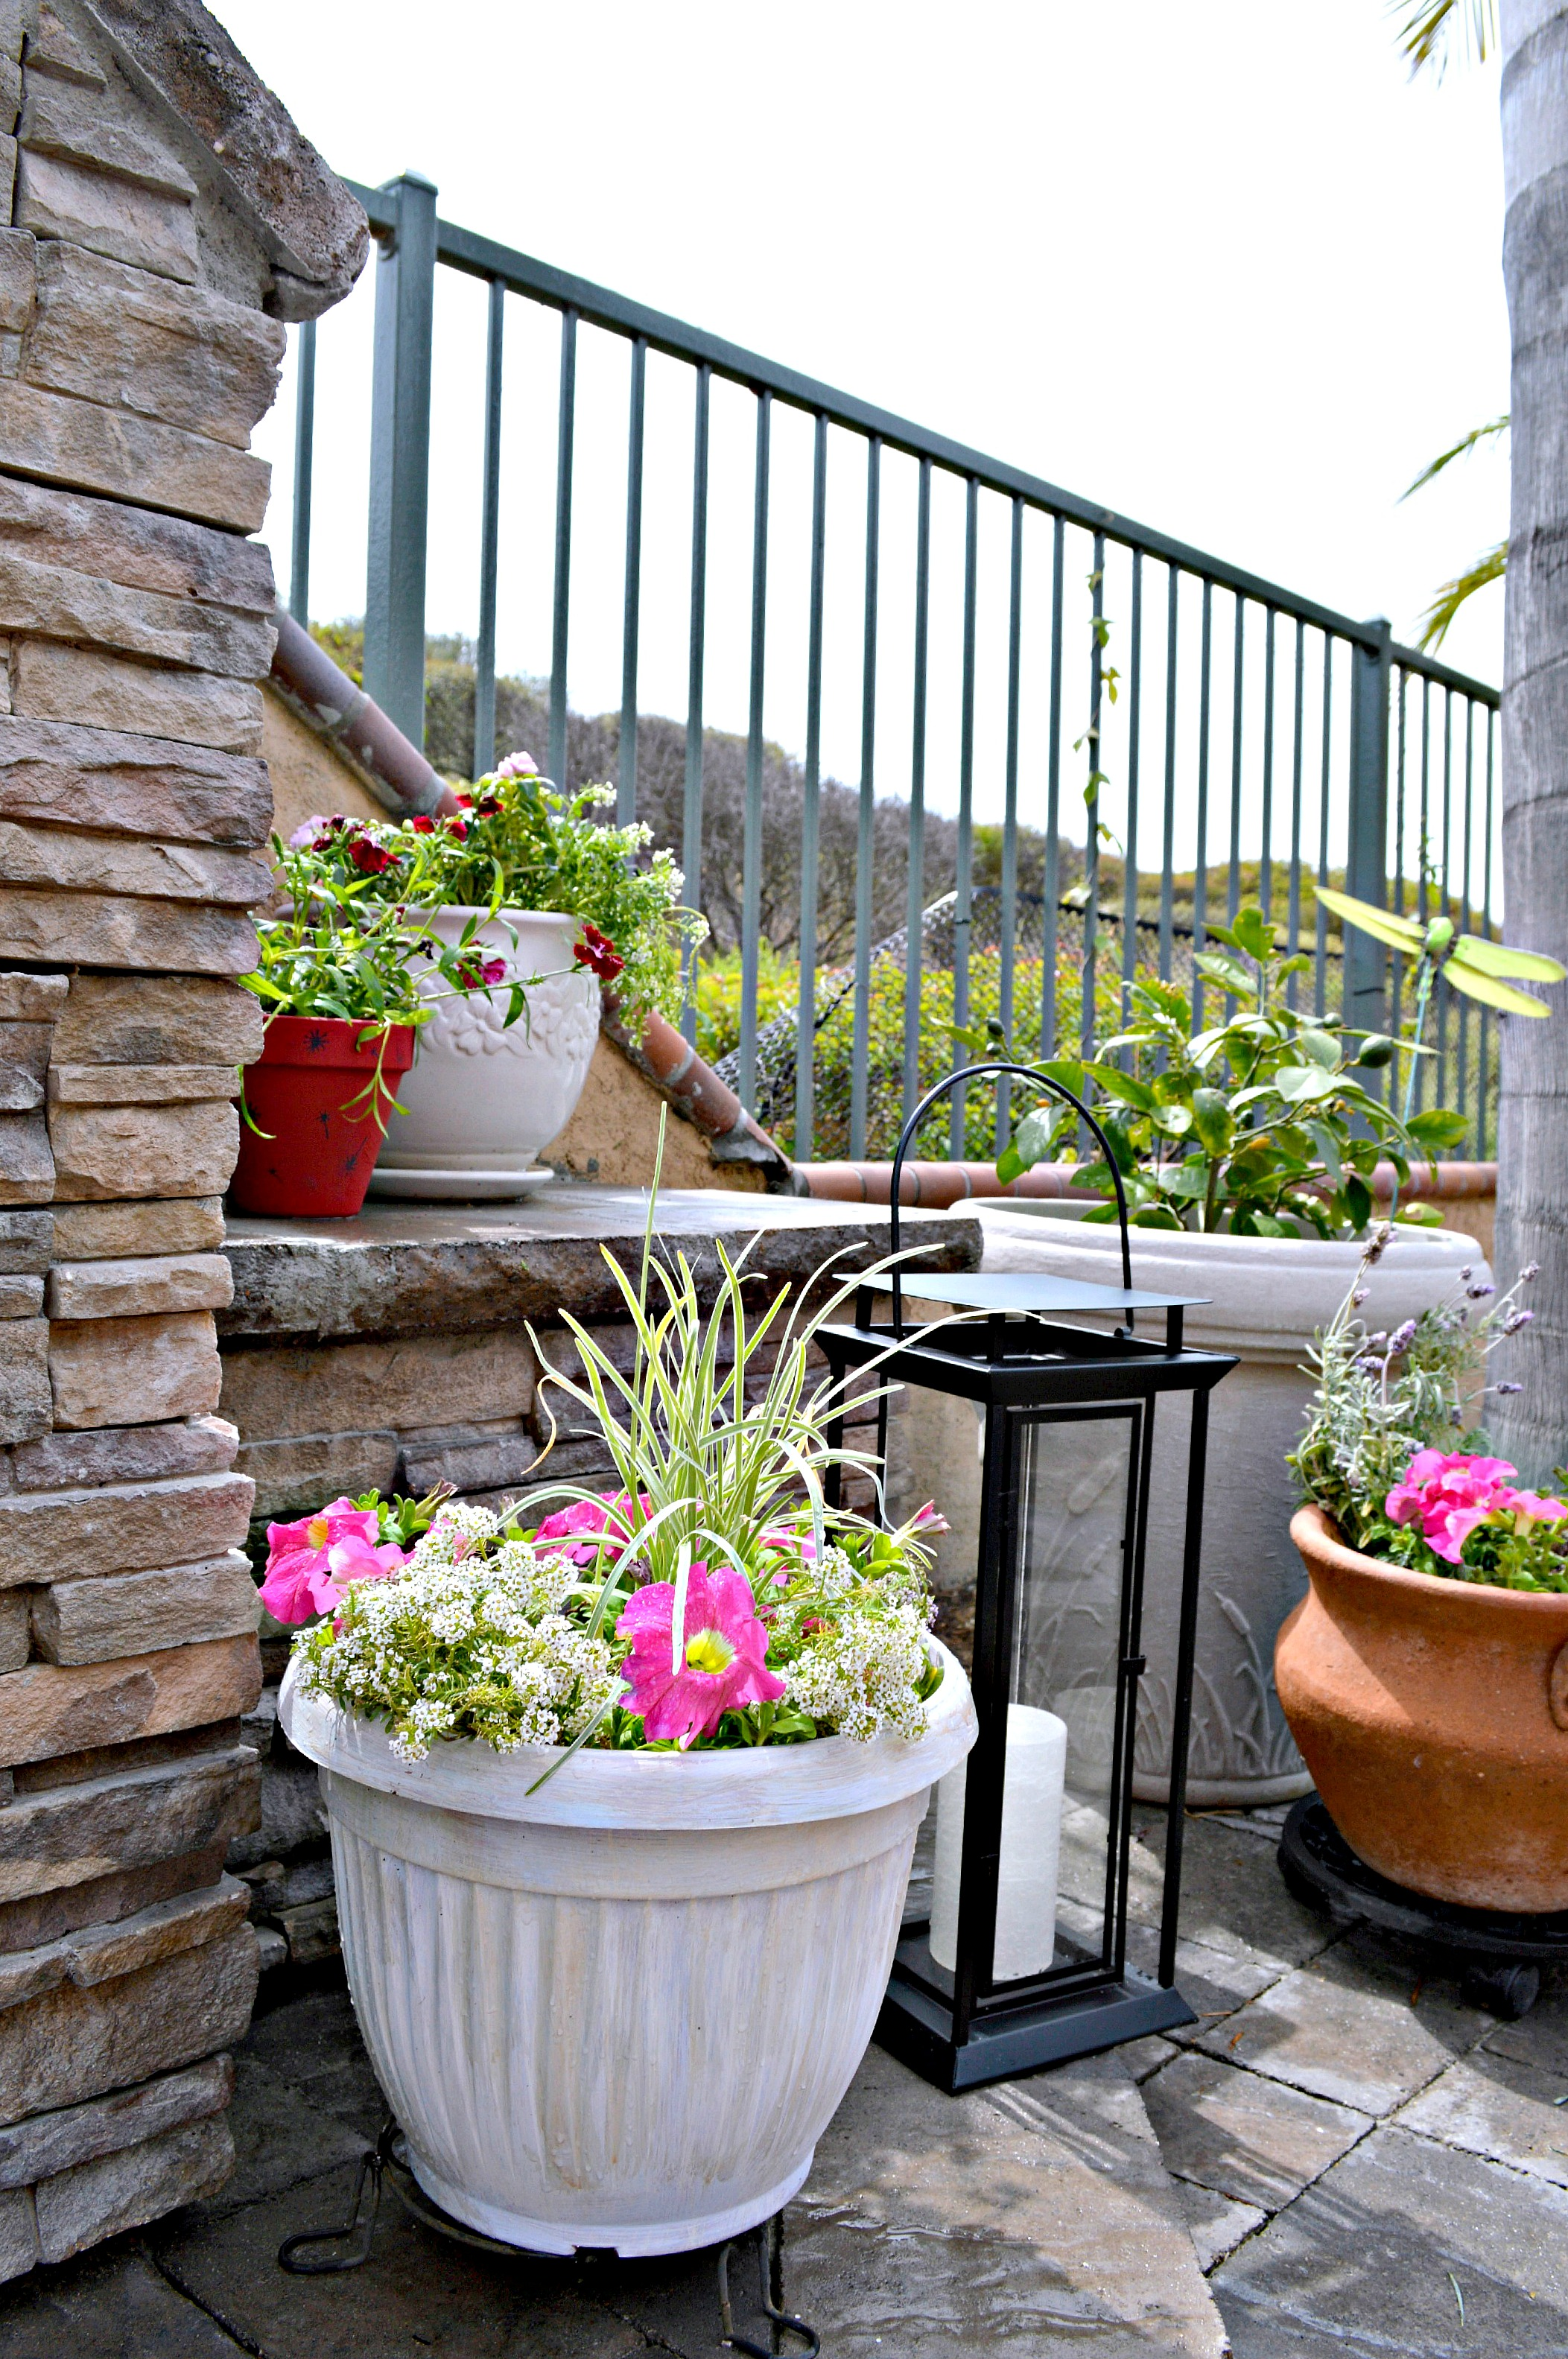 Sprucing Up The Yard With Upcycled Dollar Store Planters